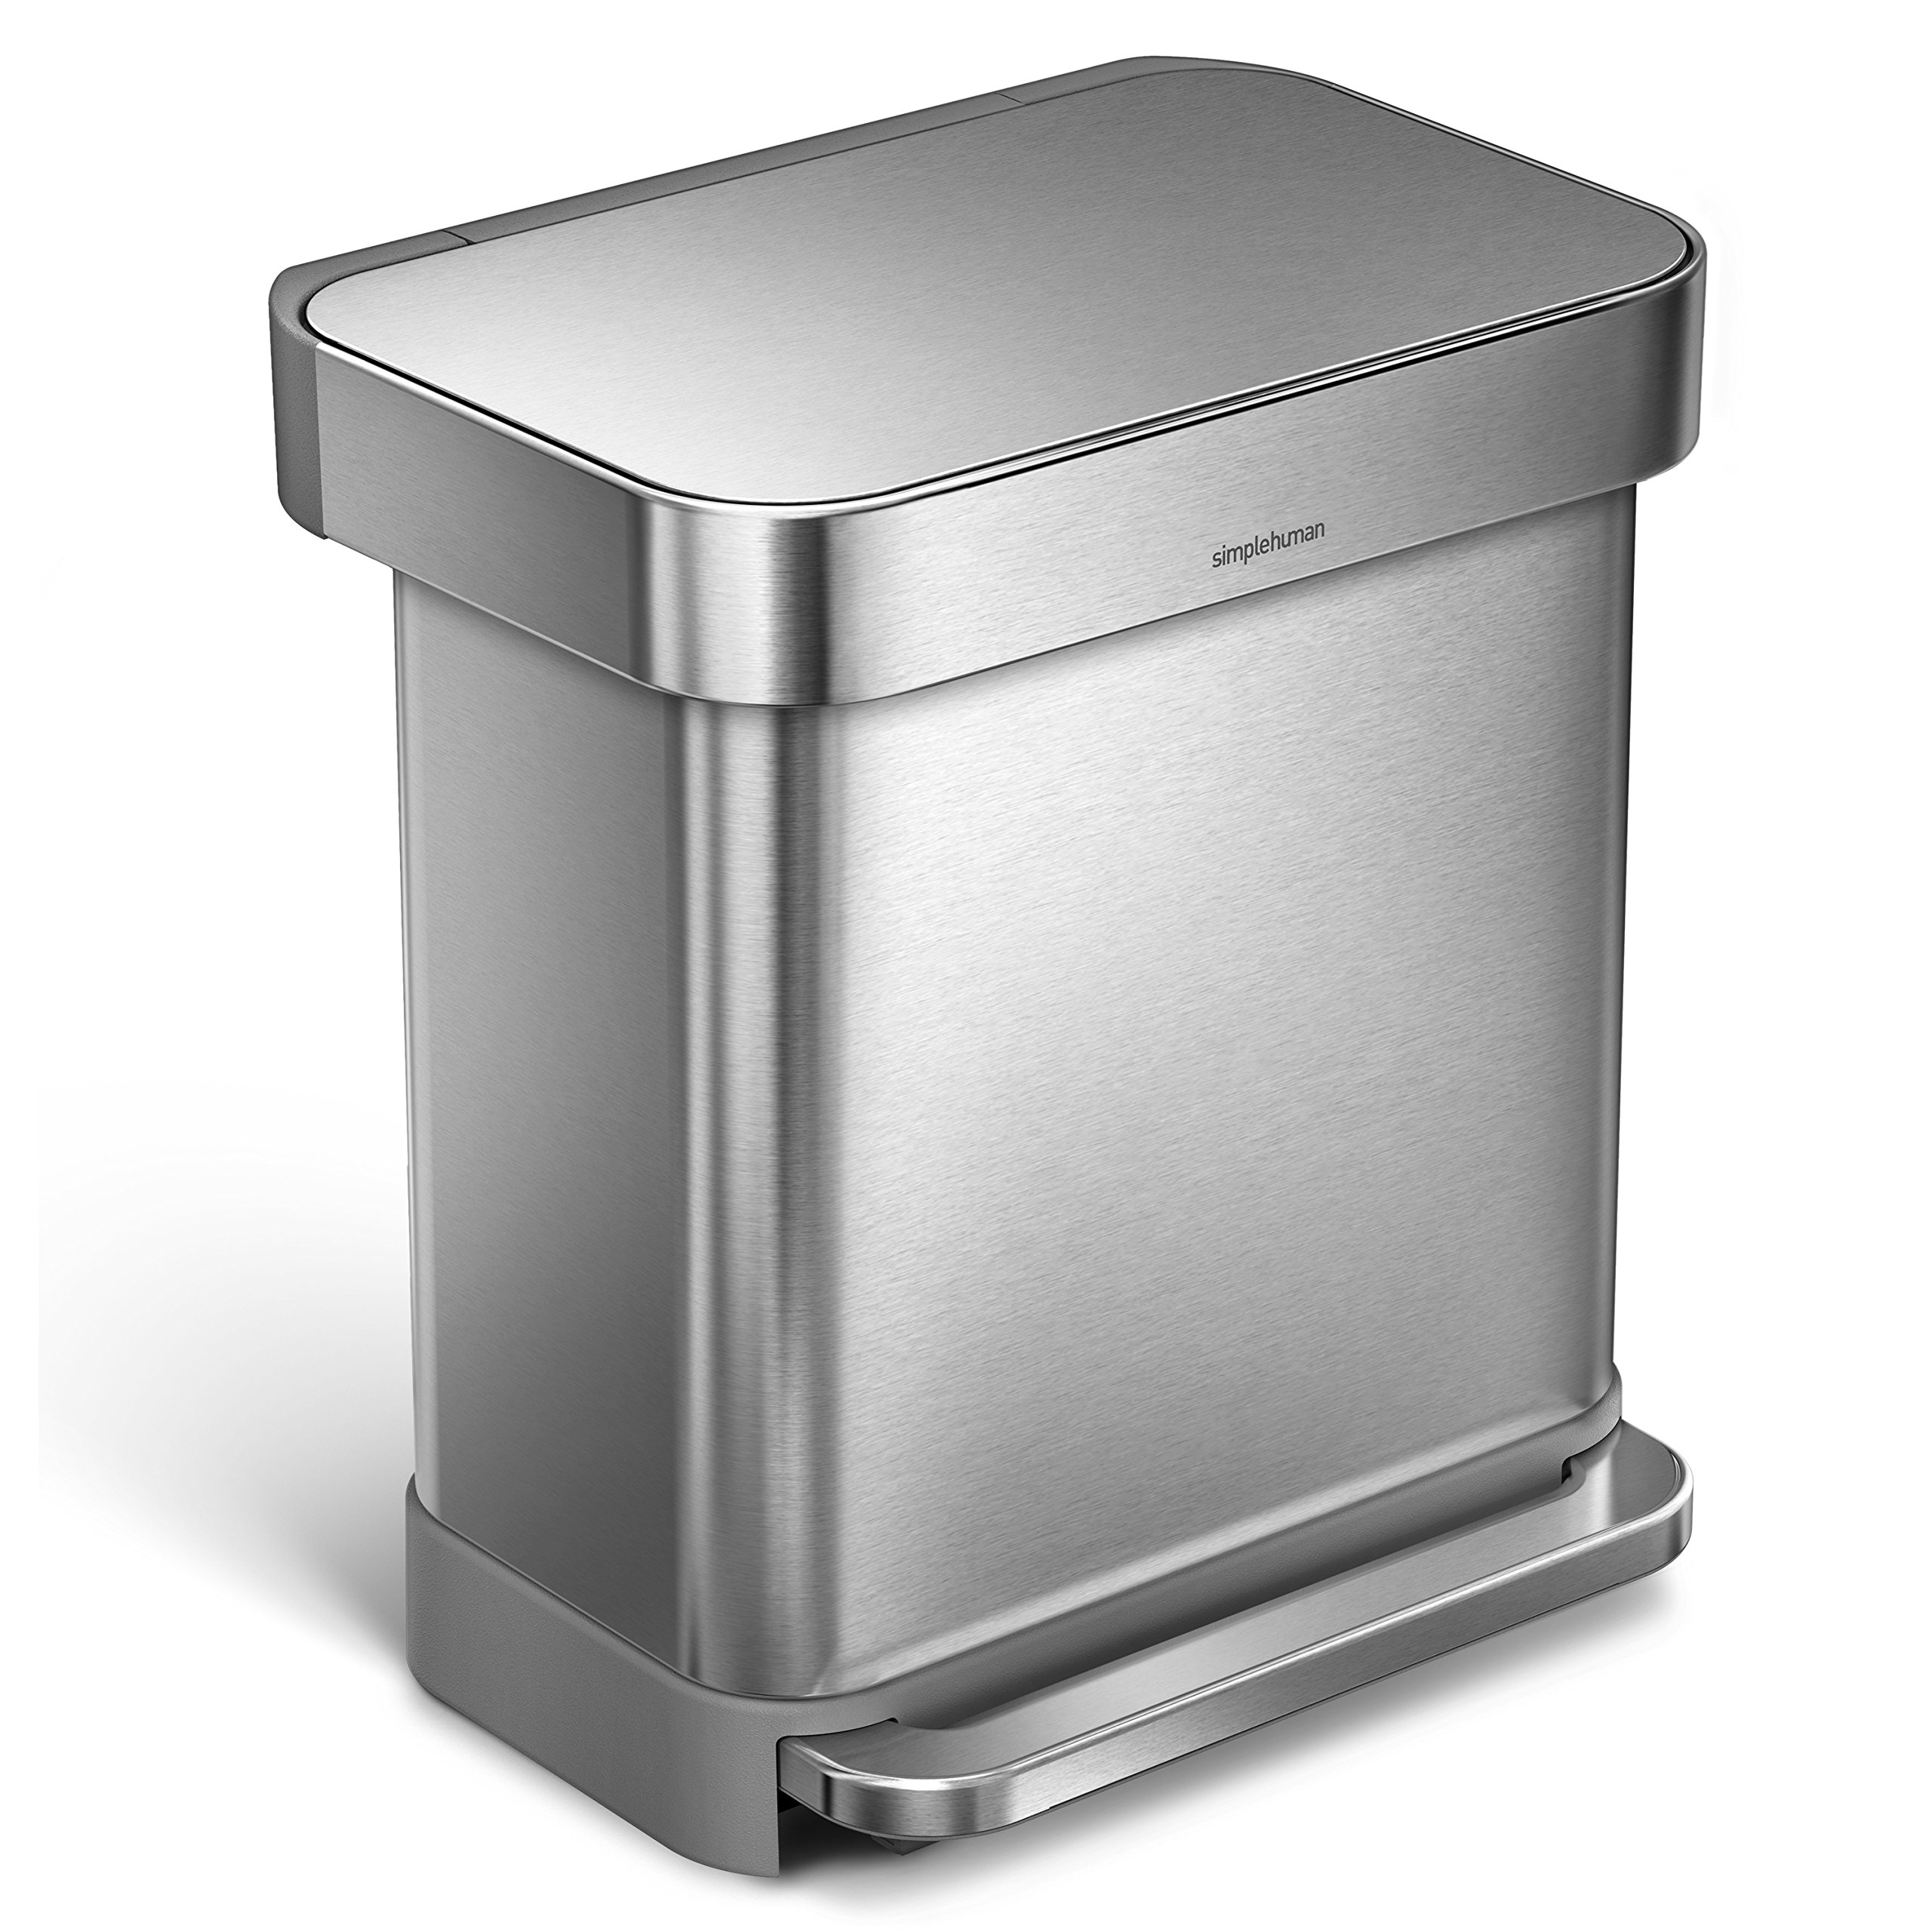 simplehuman 30 Liter/8 Gallon Stainless Steel Rectangular Kitchen Step Trash Can with Liner Pocket, Brushed Stainless Steel